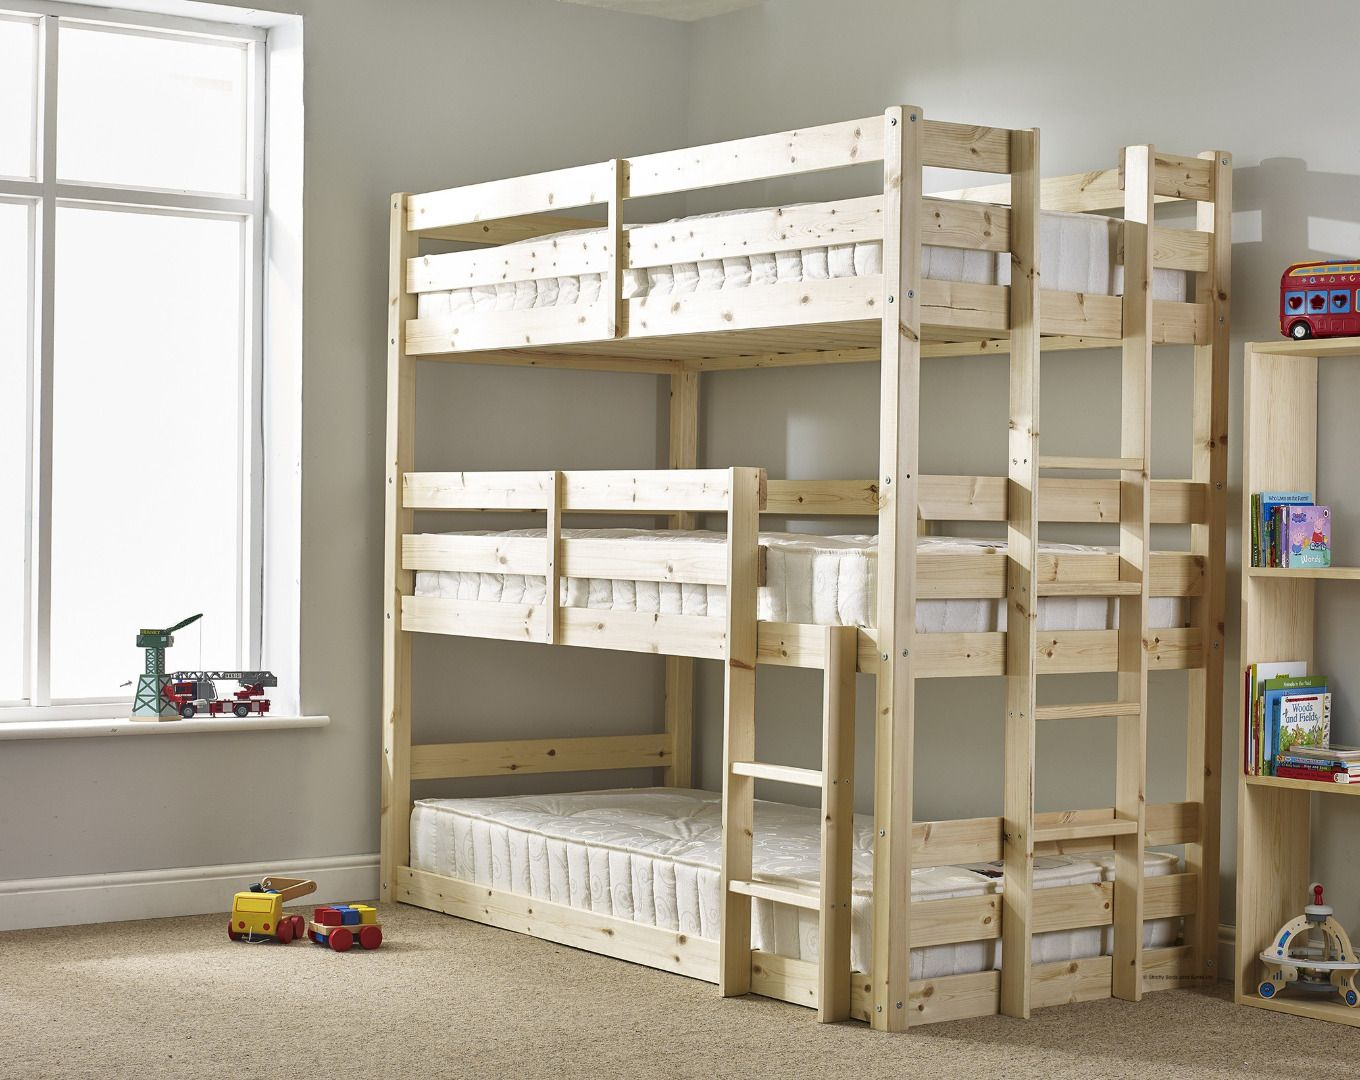 Triple bunk beds for adults - Pandora 3ft Single 3 Tier Heavy Duty Solid Pine High Triple Sleeper Bunk Bed